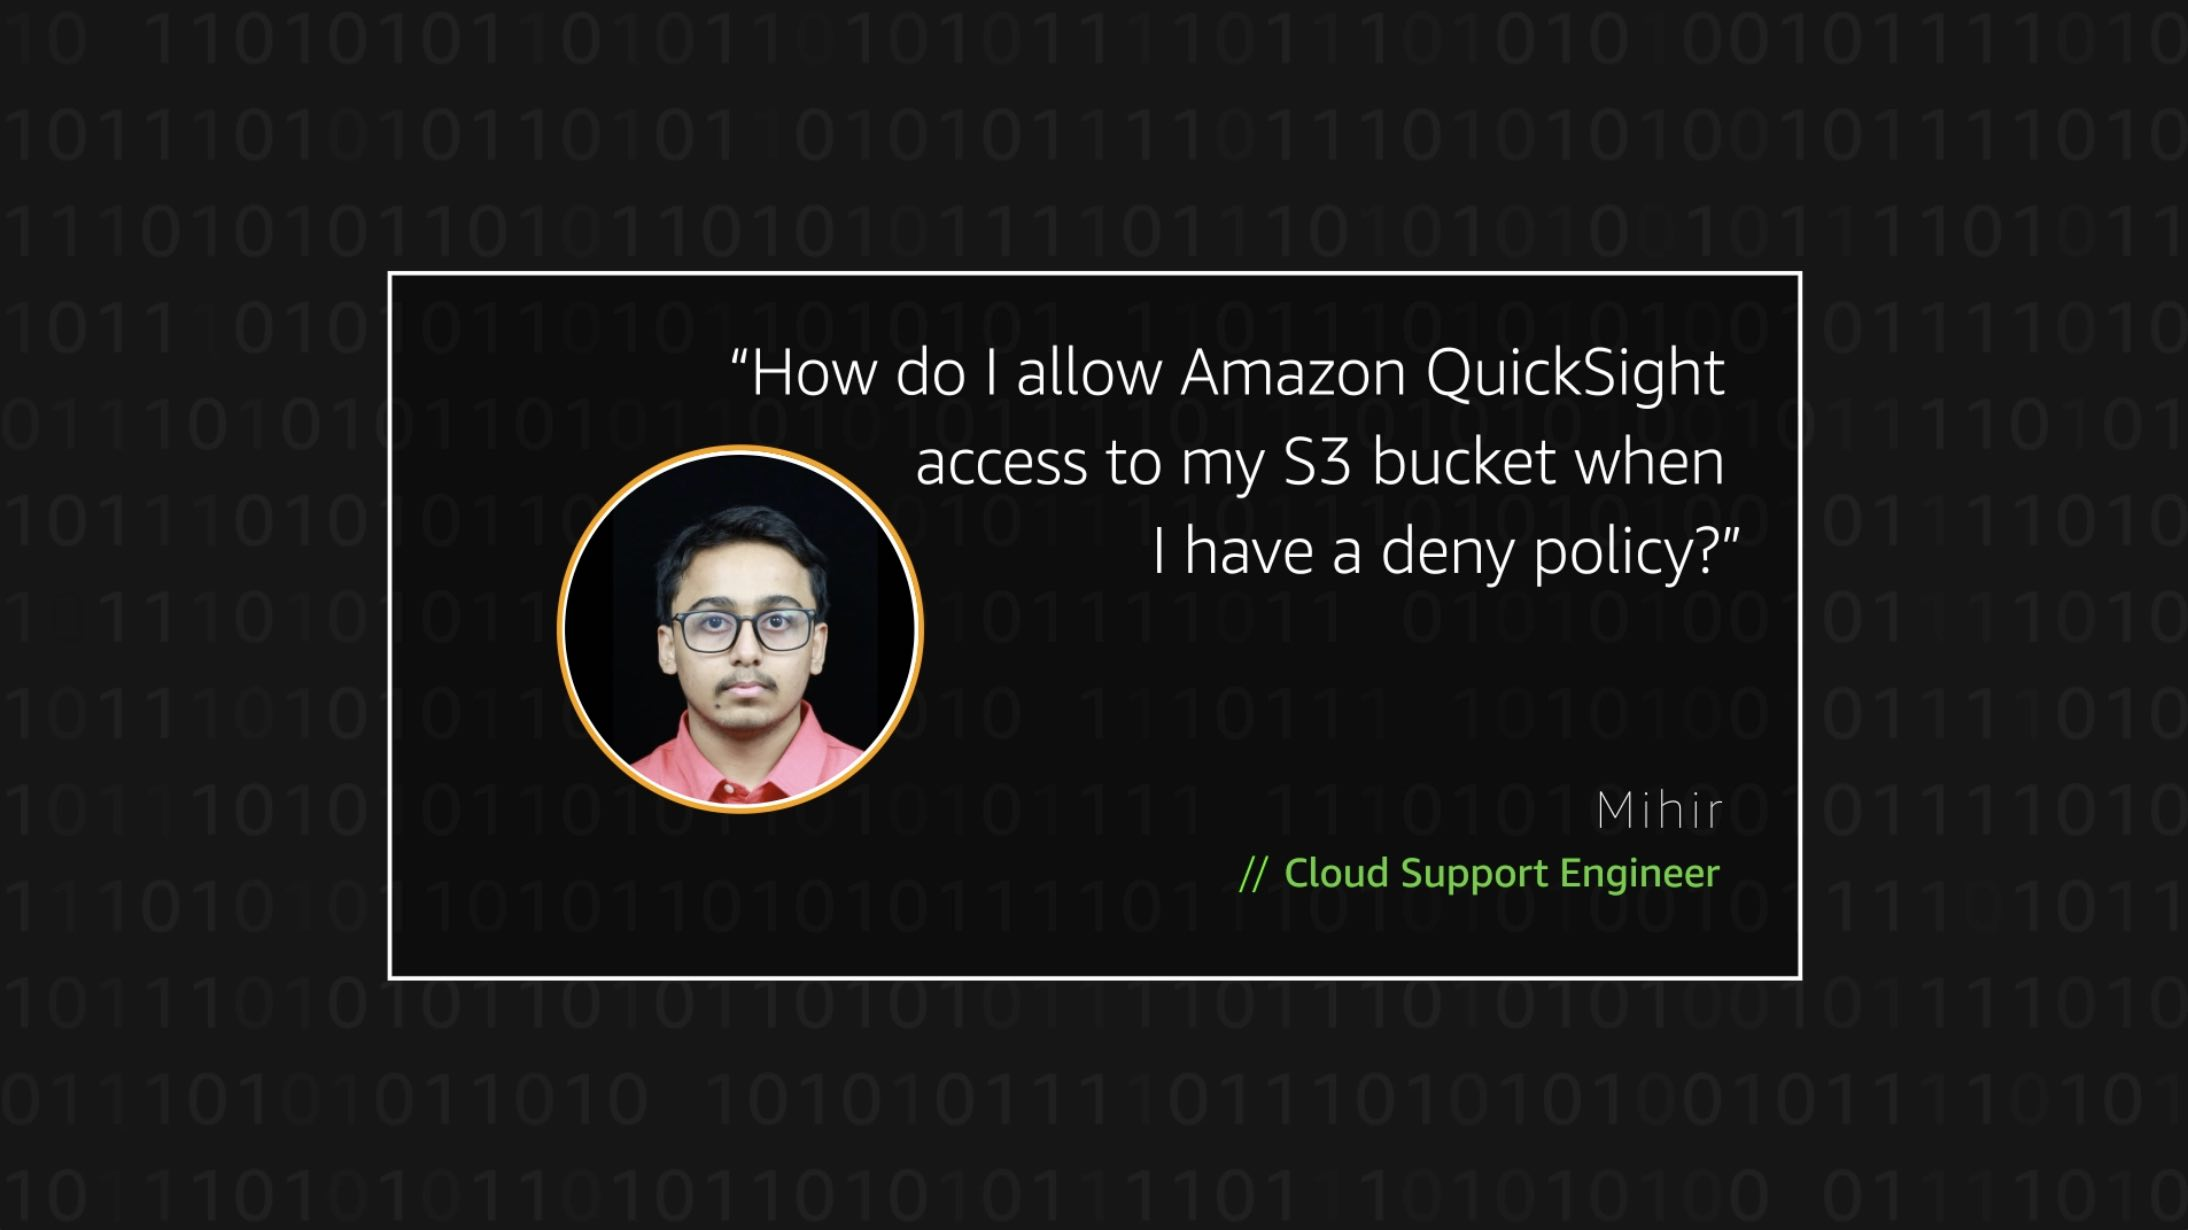 Watch Mihir's video to learn more